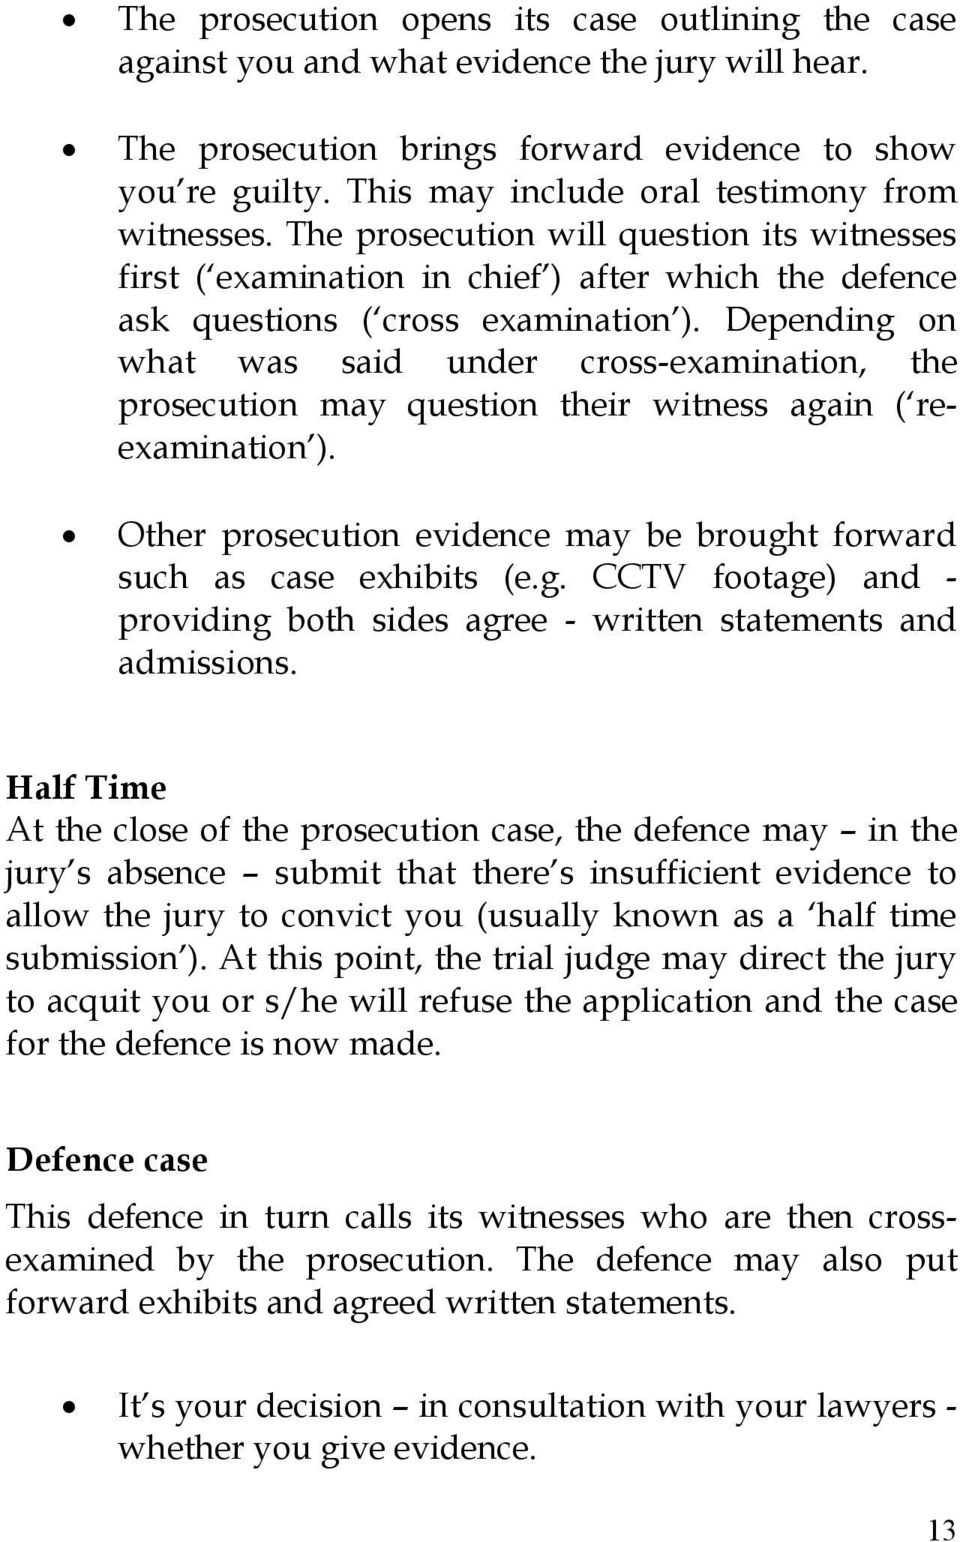 Depending on what was said under cross-examination, the prosecution may question their witness again ( reexamination ). Other prosecution evidence may be brought forward such as case exhibits (e.g. CCTV footage) and - providing both sides agree - written statements and admissions.